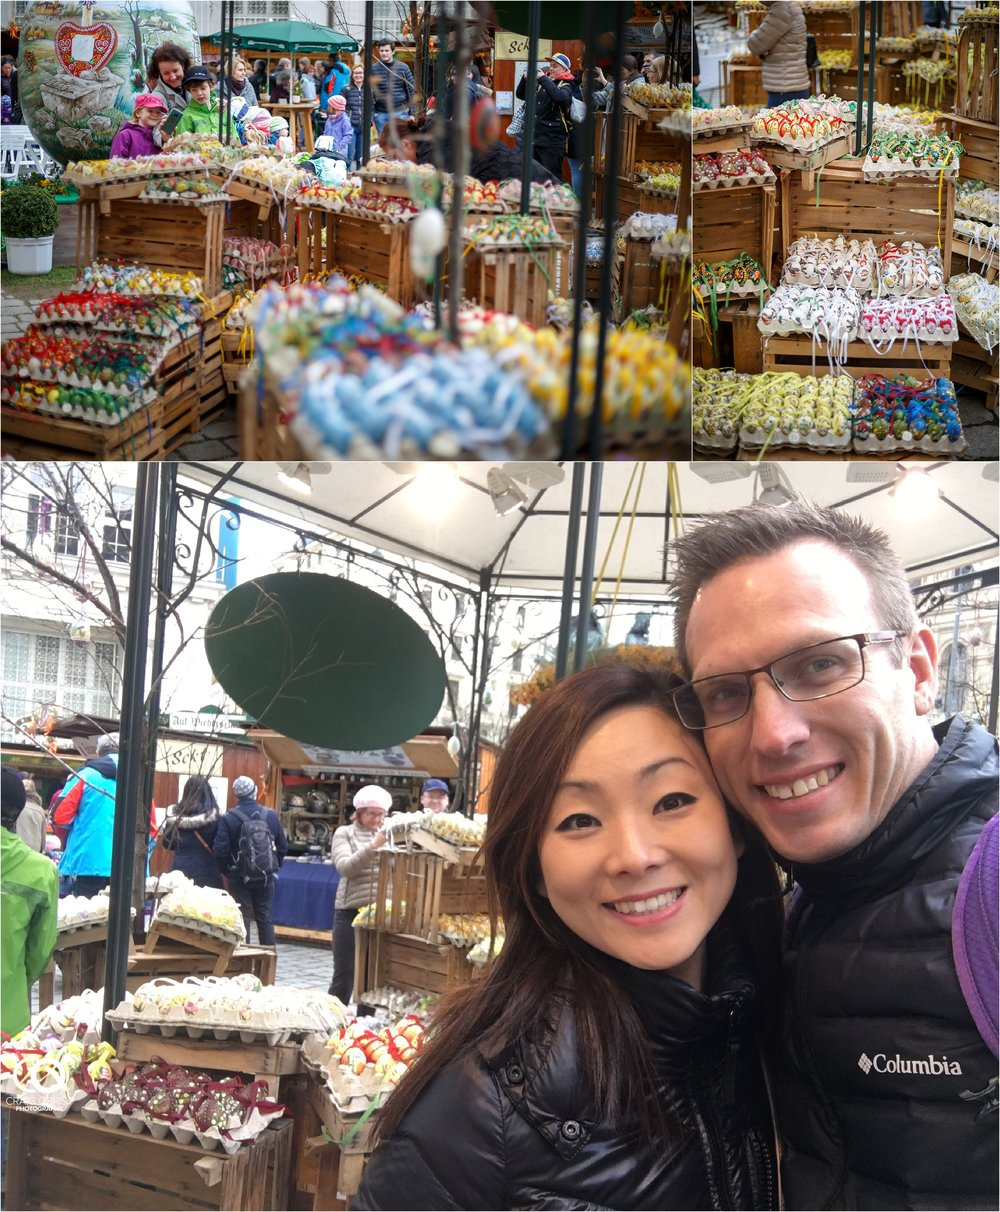 At a Easter market! Yes, we missed Easter with our kids... :(